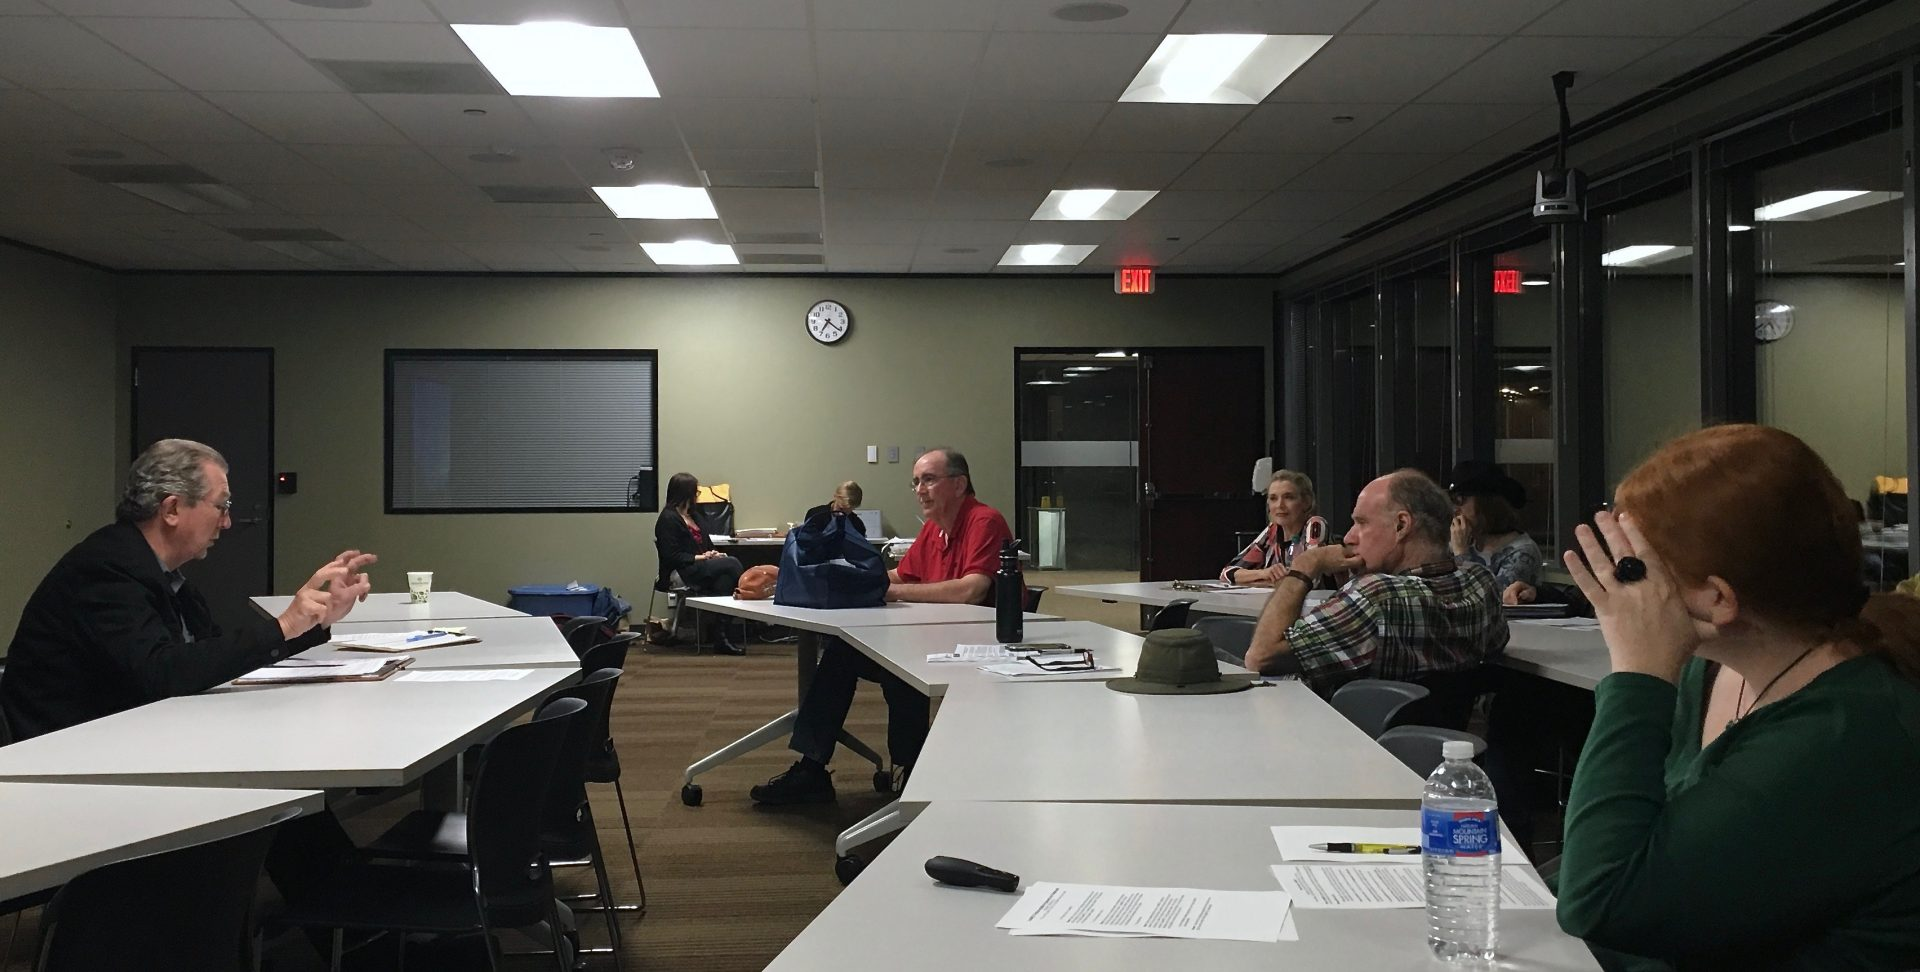 Bill Aleshire provides guidance to IndyAustin members